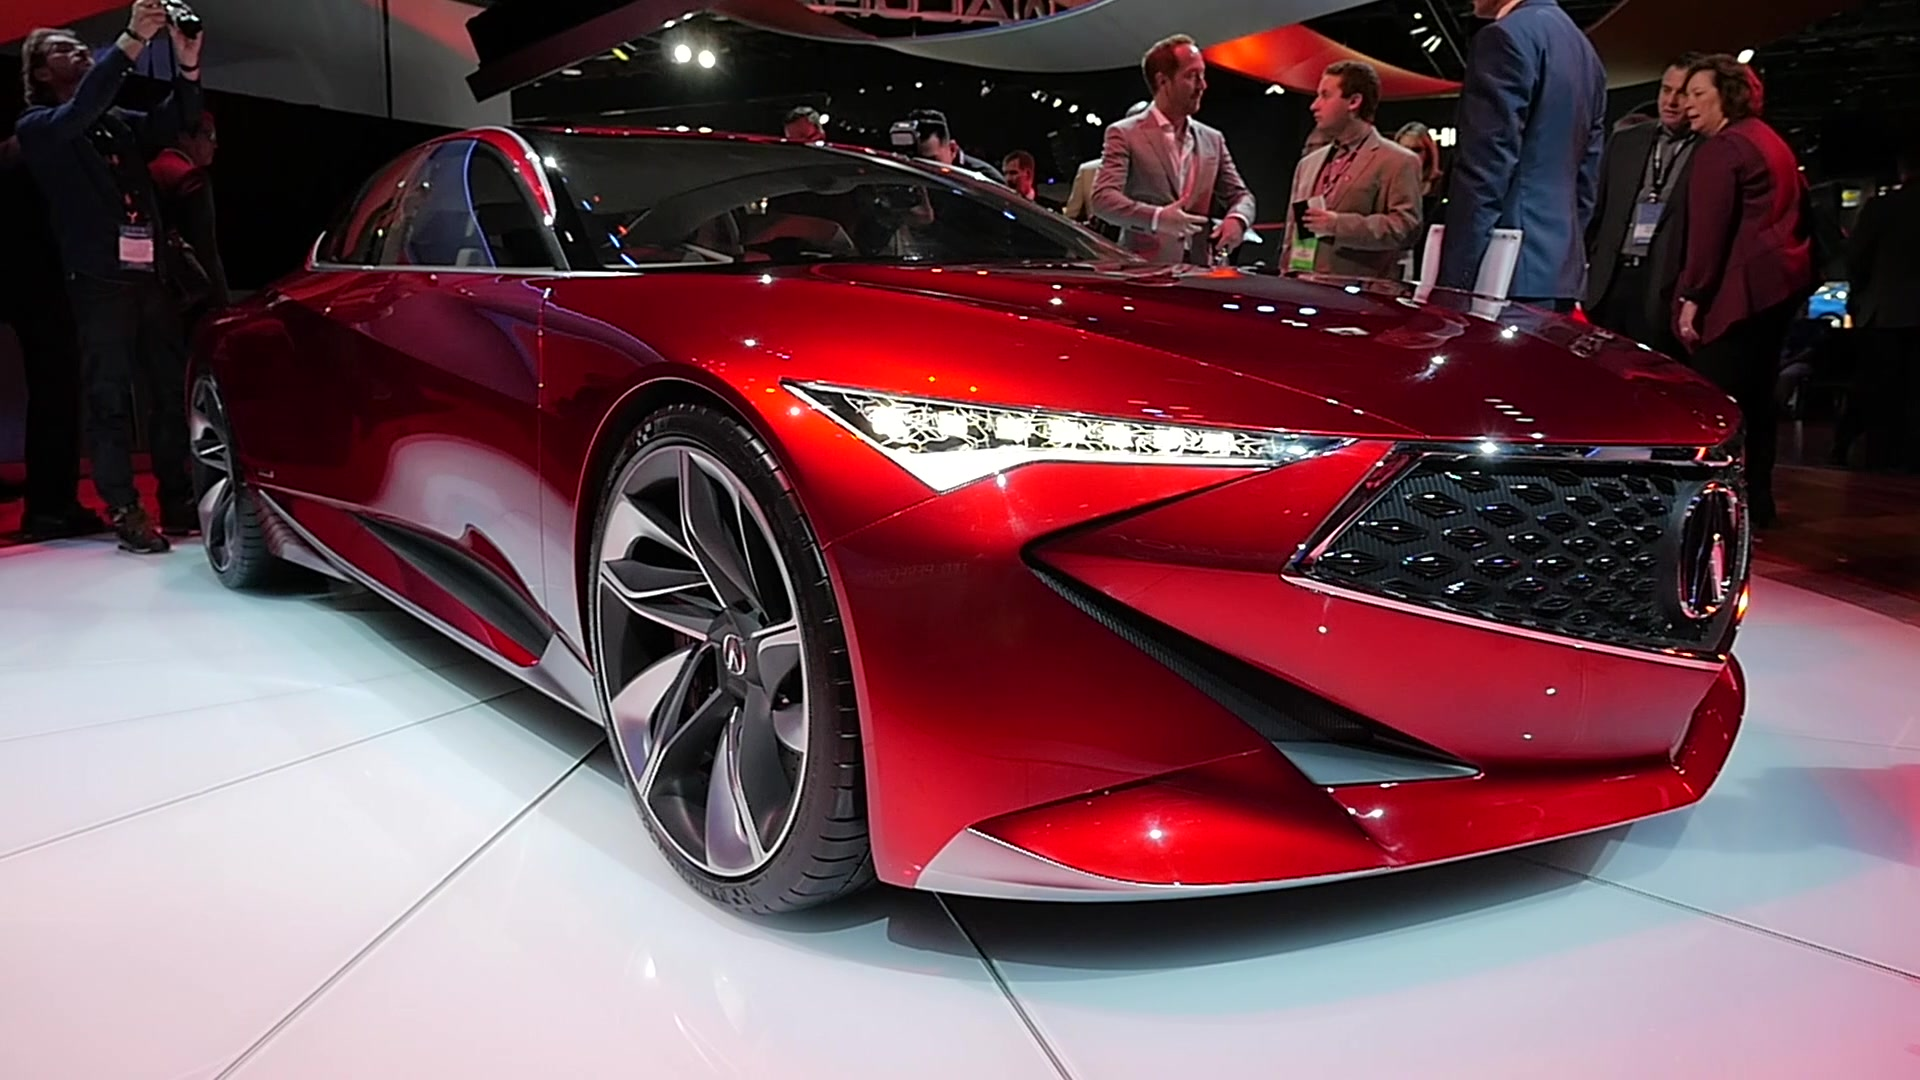 Worksheet. Precision Concept previews the future of Acura design wvideo